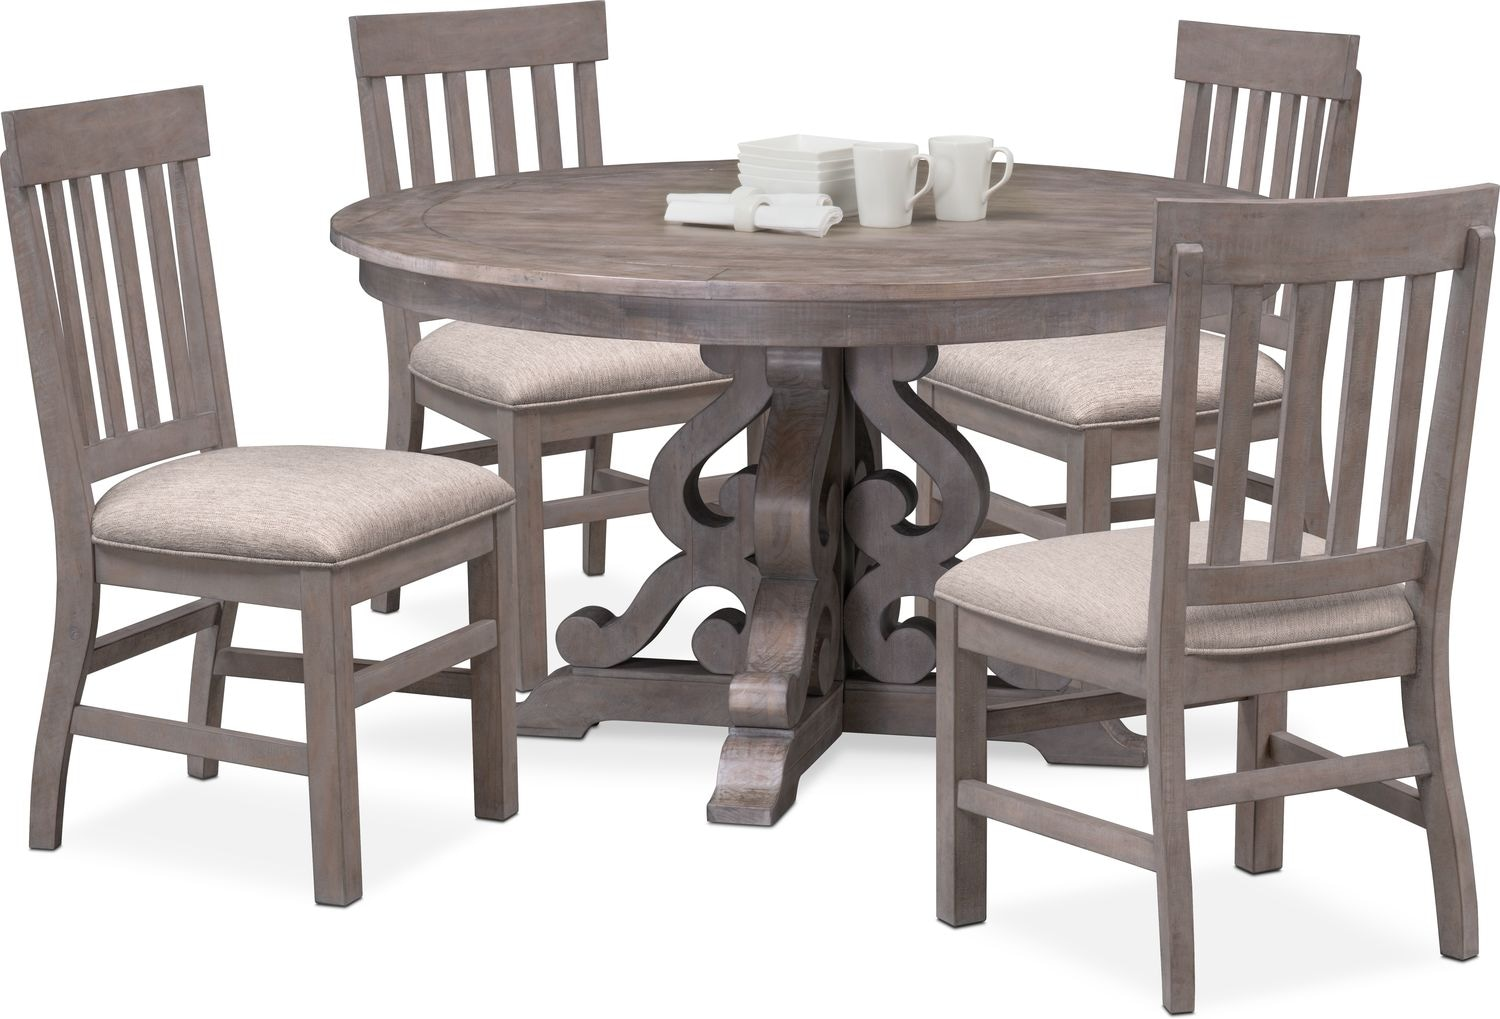 Charthouse Round Dining Table And 4 Side Chairs Gray